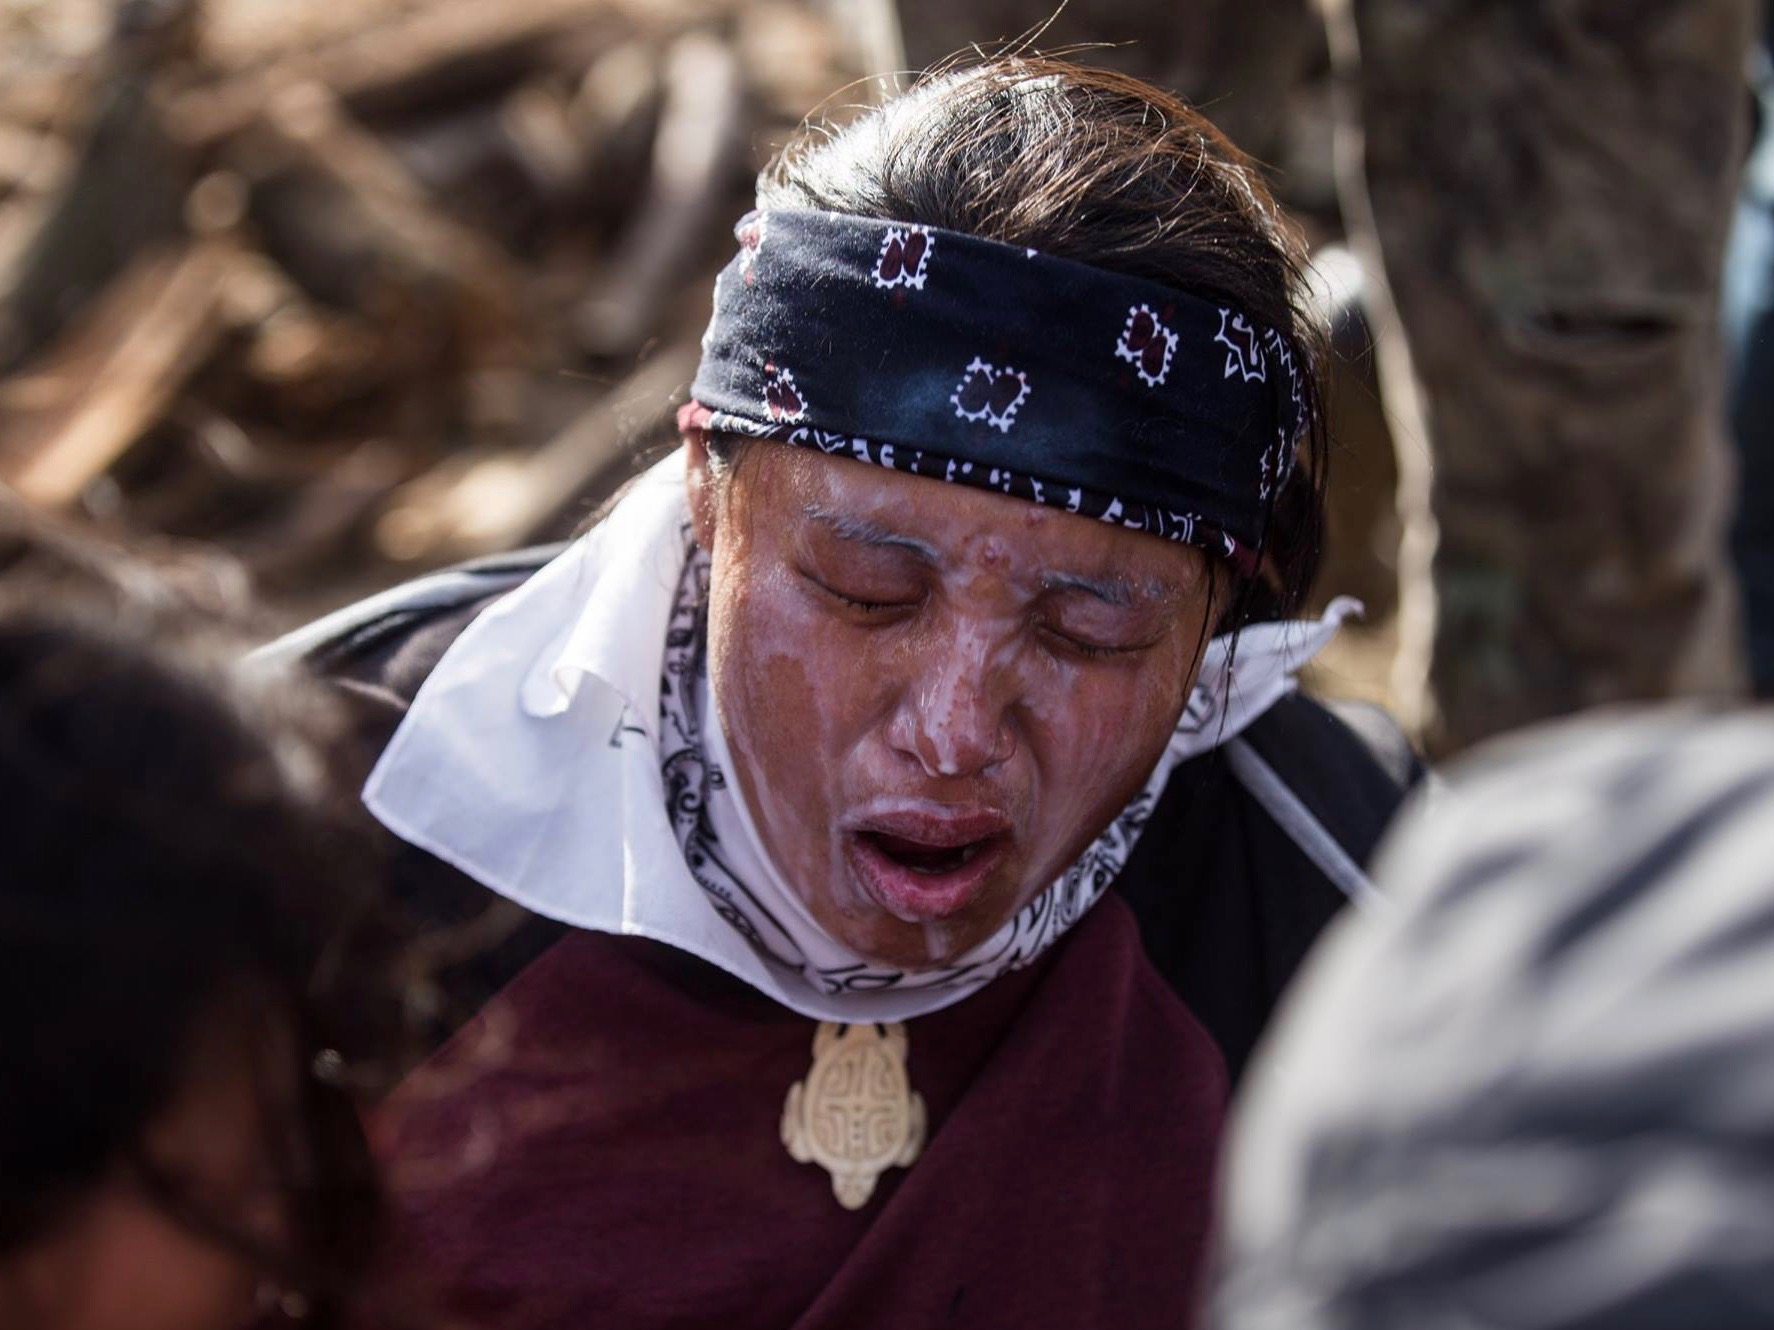 Dina Gilio-Whitaker: #NoDAPL crackdown shows how racism lives on